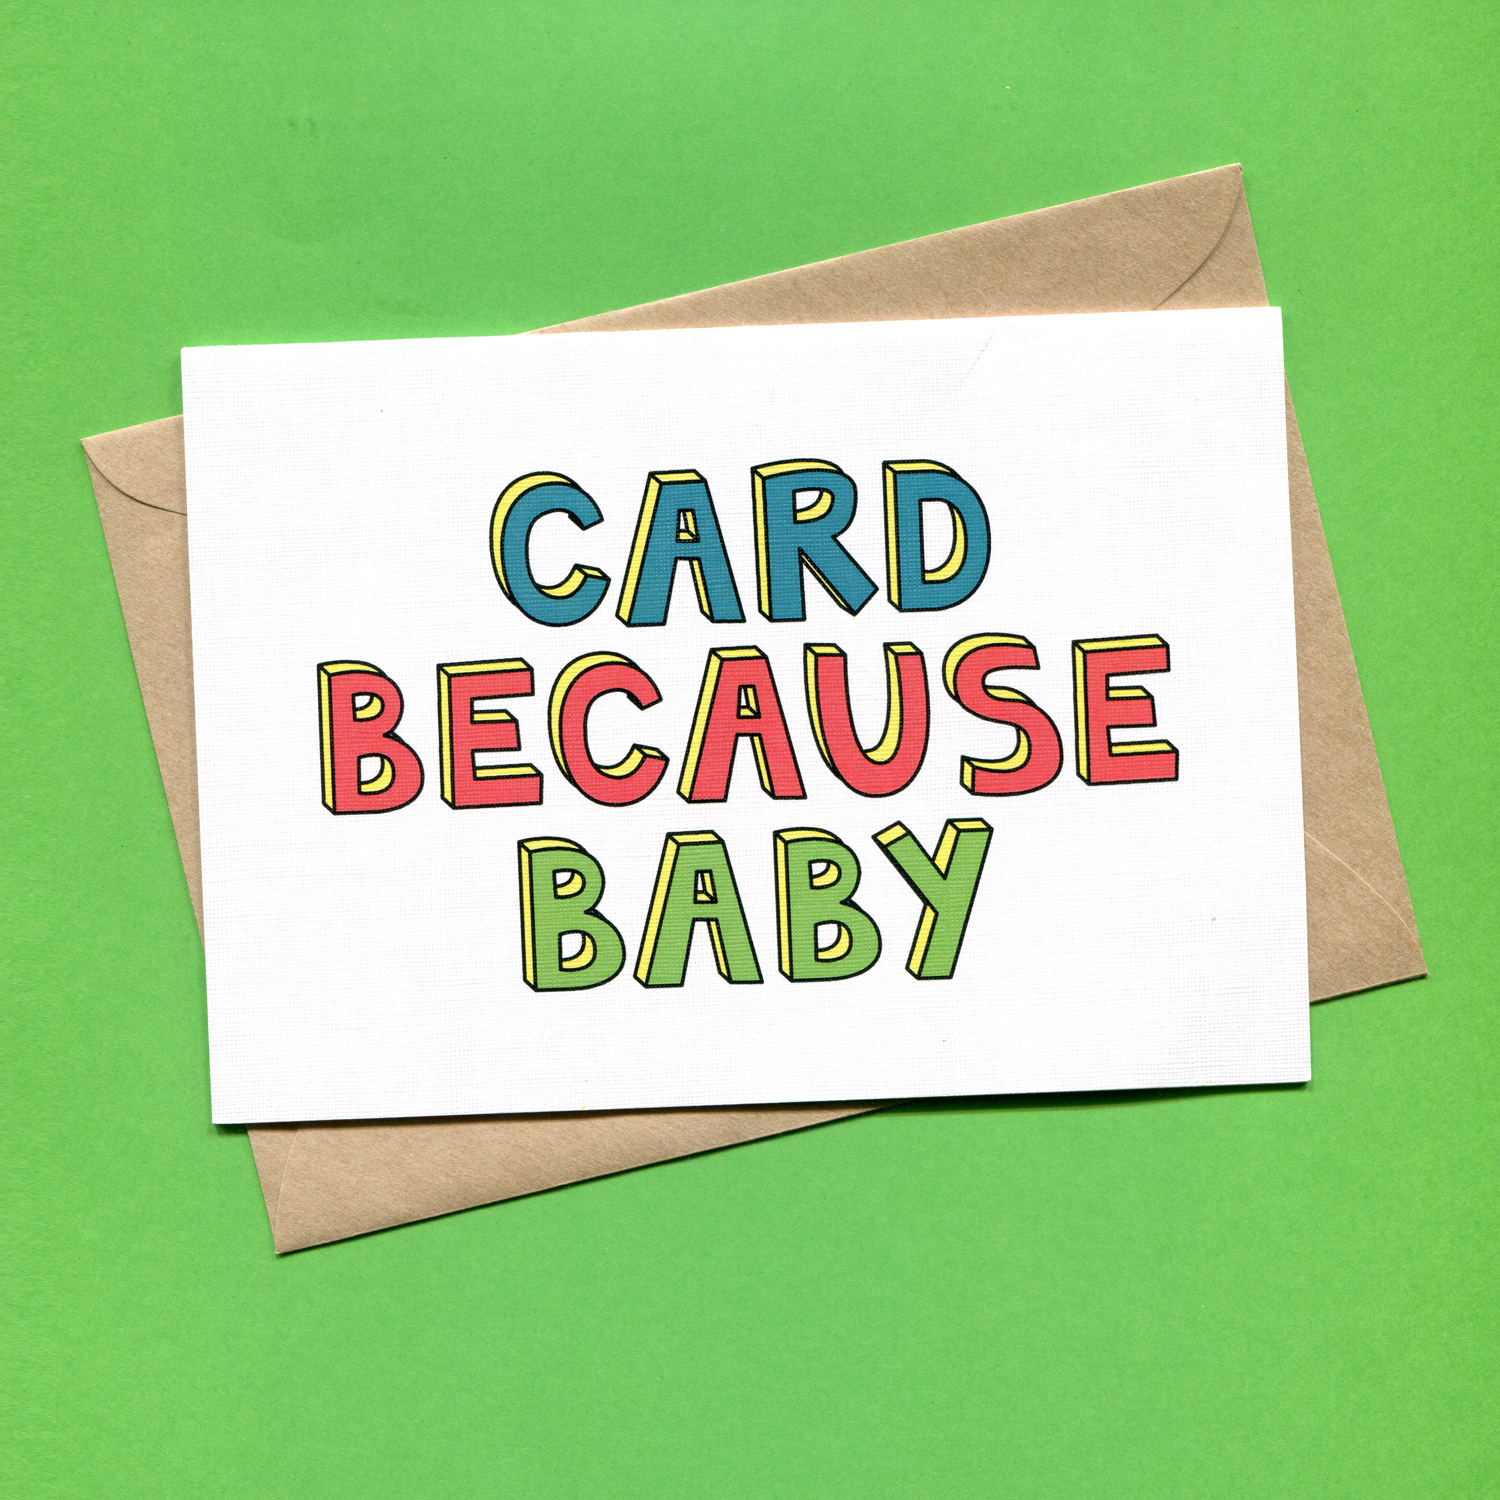 Catalogue_Things by Bean Card Because Baby Greeting Card.jpg